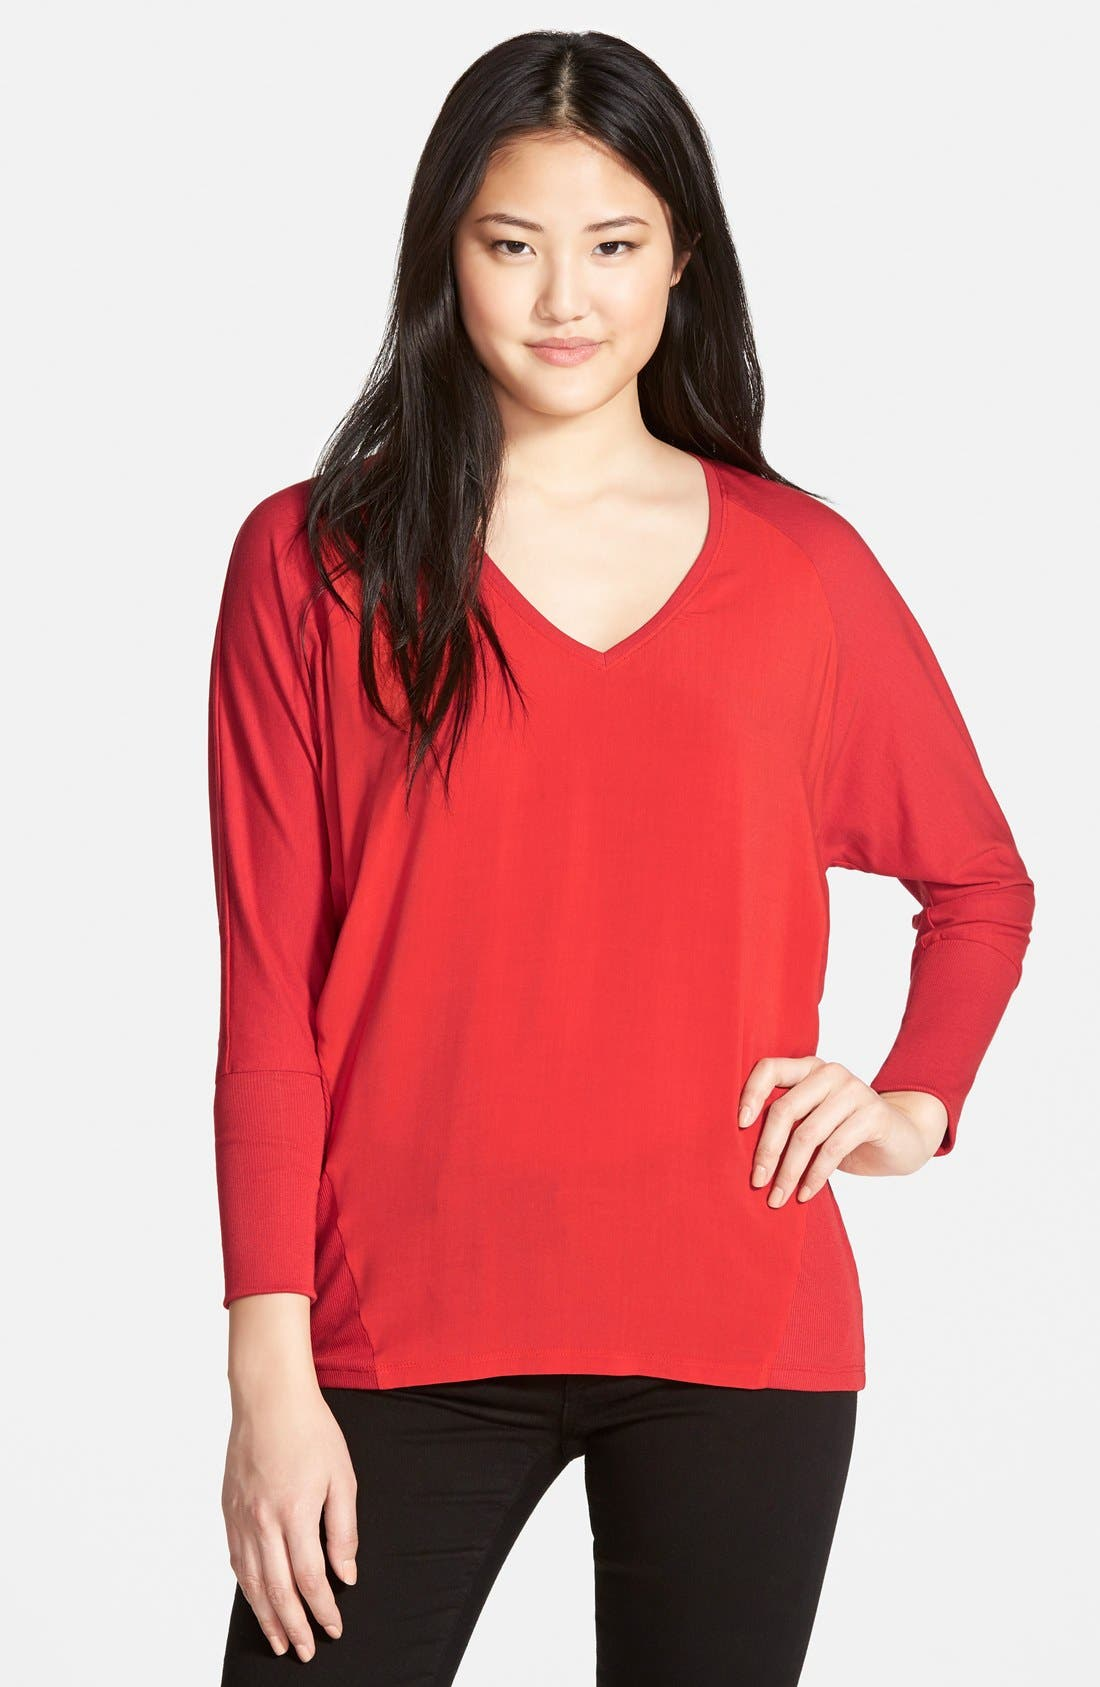 Alternate Image 1 Selected - Two by Vince Camuto 'Saturday' V-Neck Mixed Media Top (Regular & Petite) (Nordstrom Exclusive)